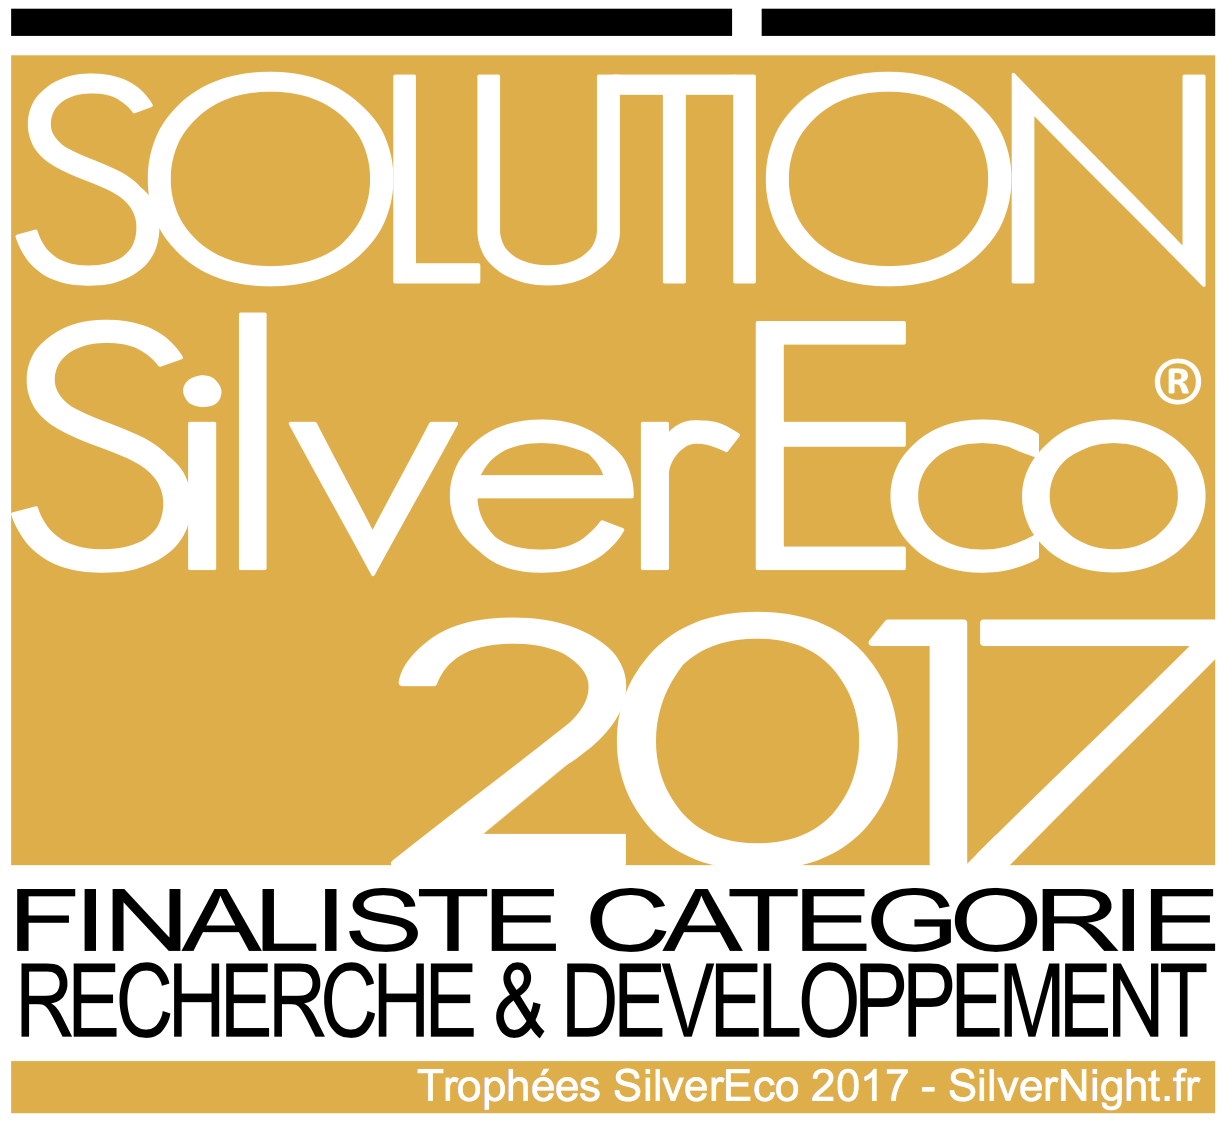 Solution silver eco